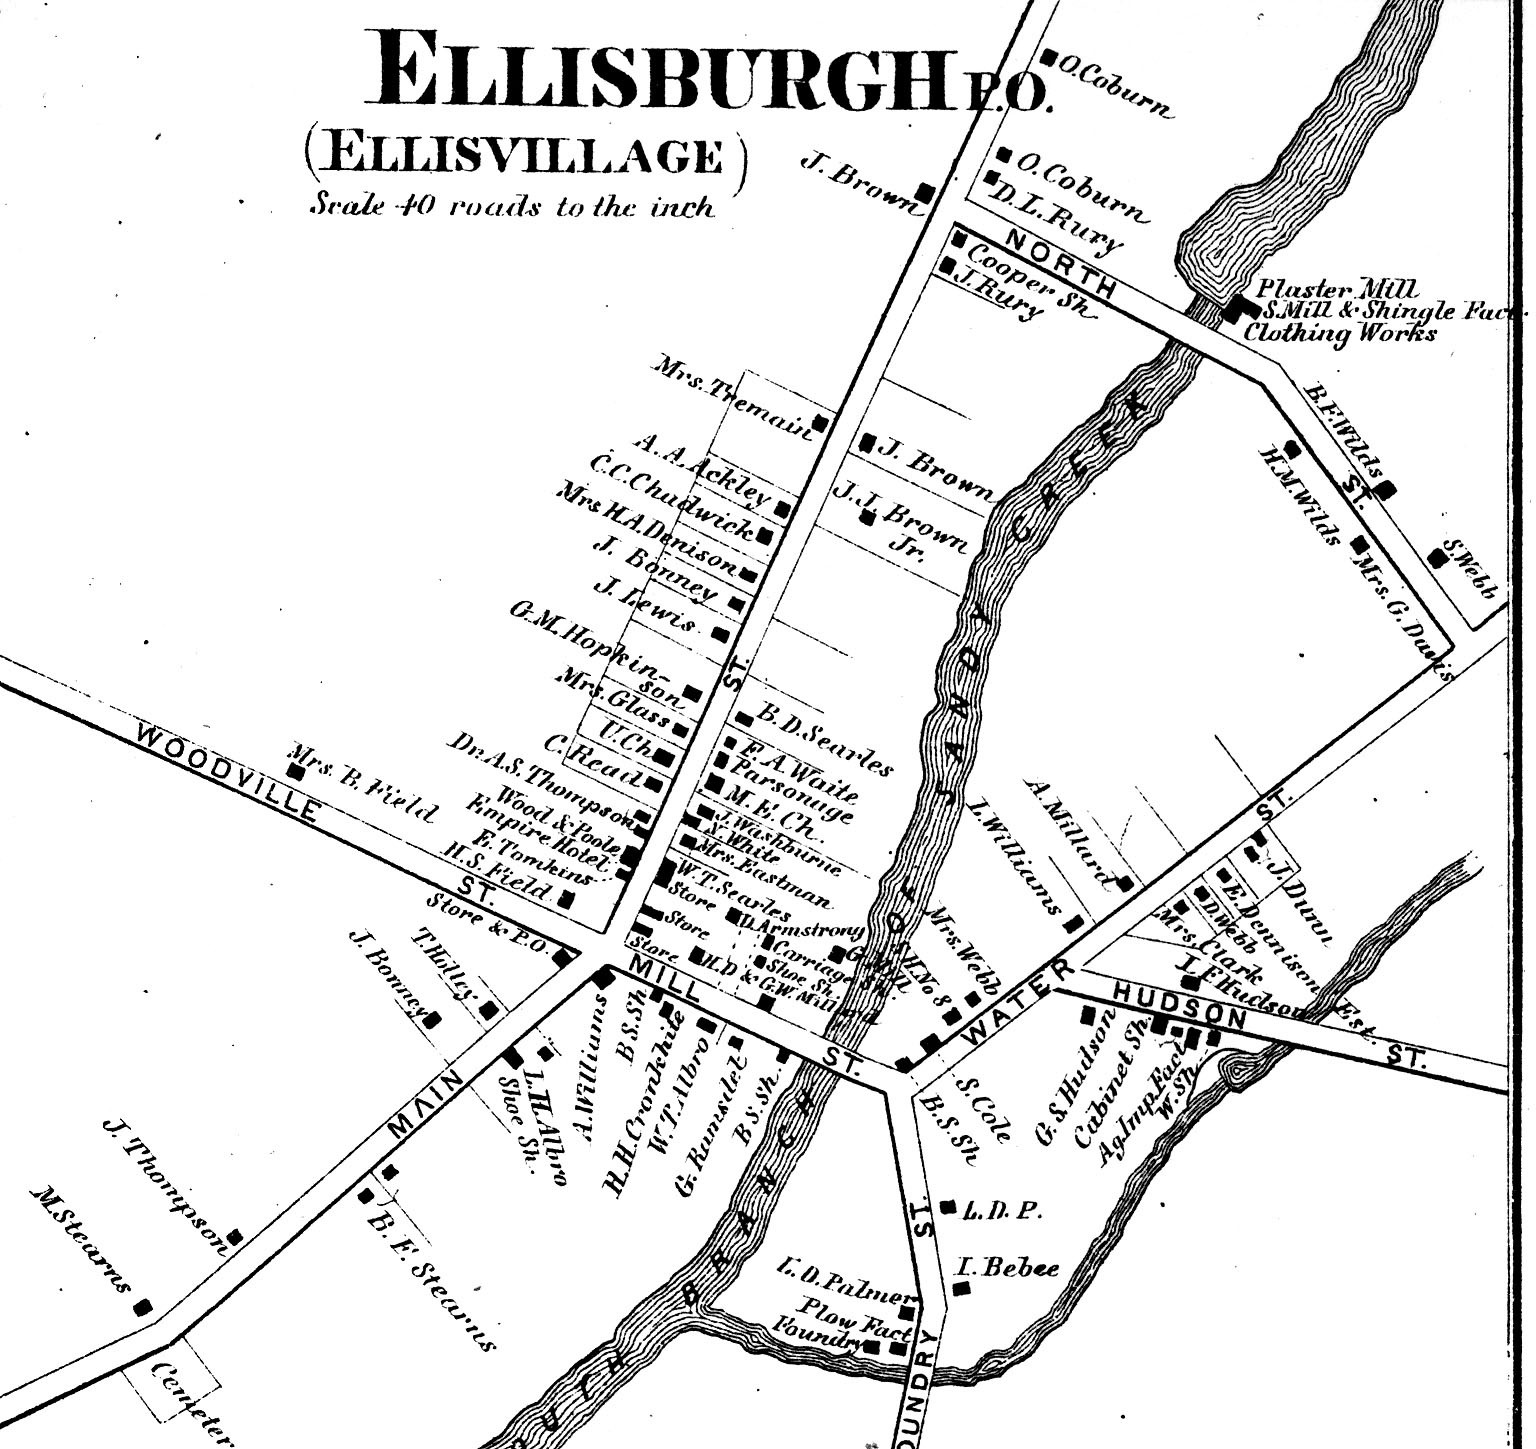 1864 Map of Ellisburg